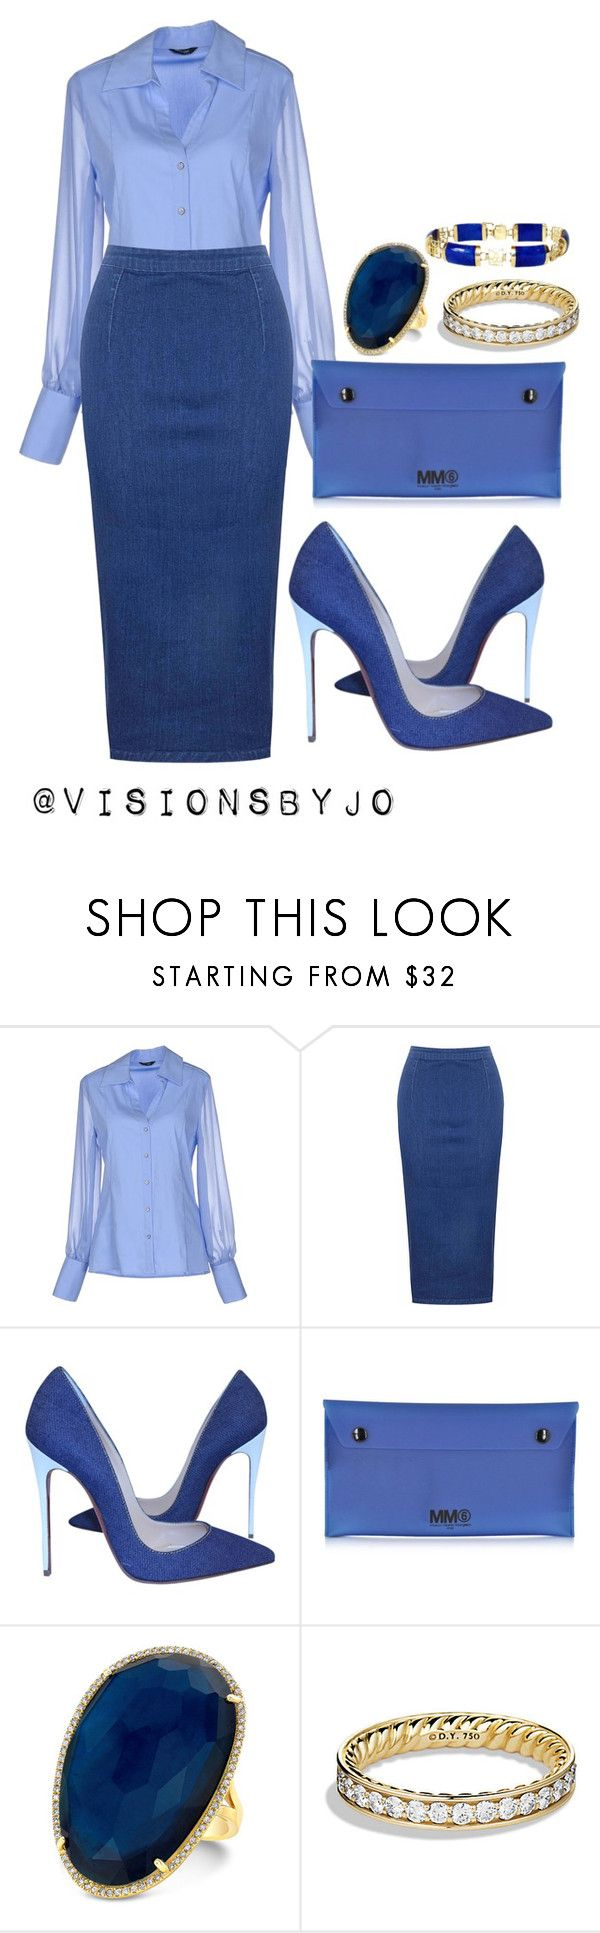 """Untitled #1169"" by visionsbyjo ❤ liked on Polyvore featuring GUESS by Marciano, Glamorous, Christian Louboutin, MM6 Maison Margiela, Anne Sisteron and David Yurman"